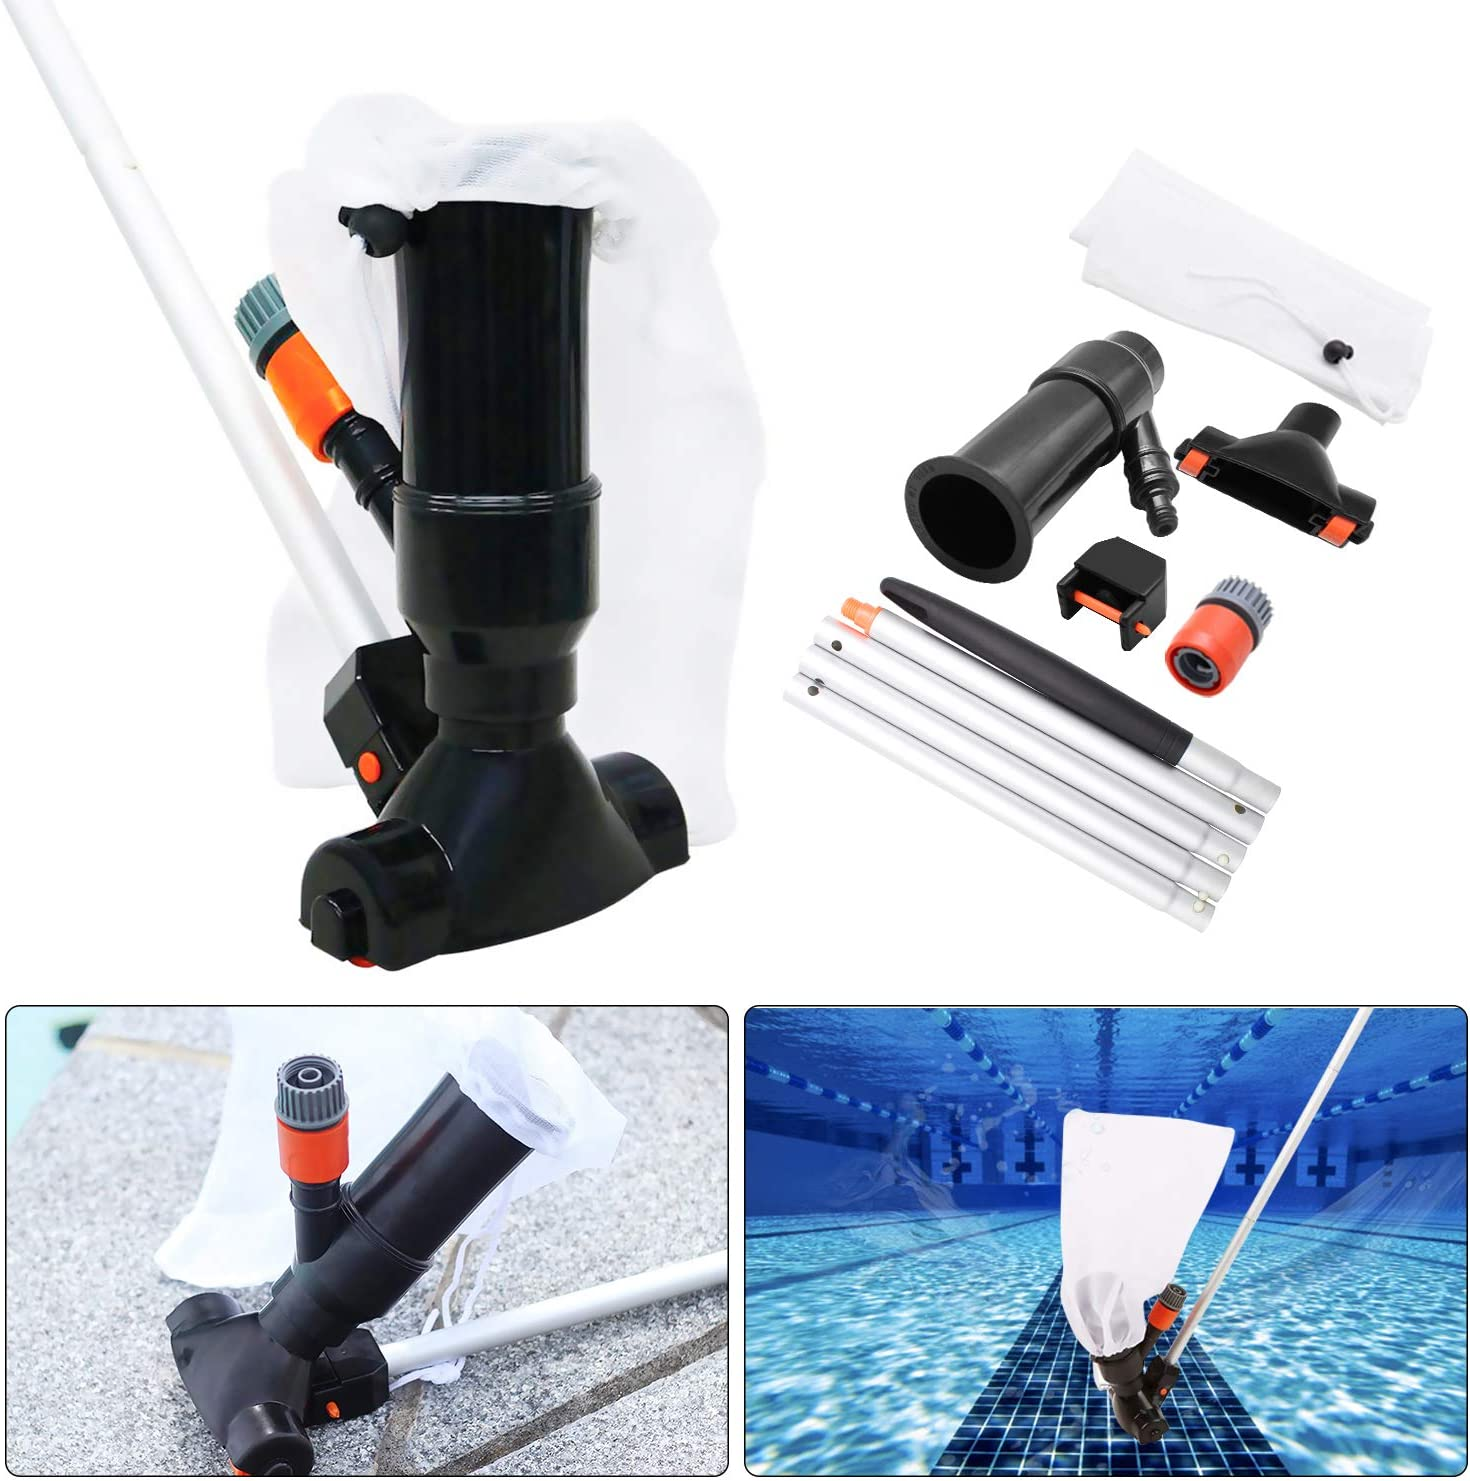 Swimming Pool Jet Vacuum Cleaner Underwater with 5 Section Pole Portable Pool Mini Jet Vacuum Suction Head for Above Ground Pool Spas Hot Tub Ponds /& Fountains